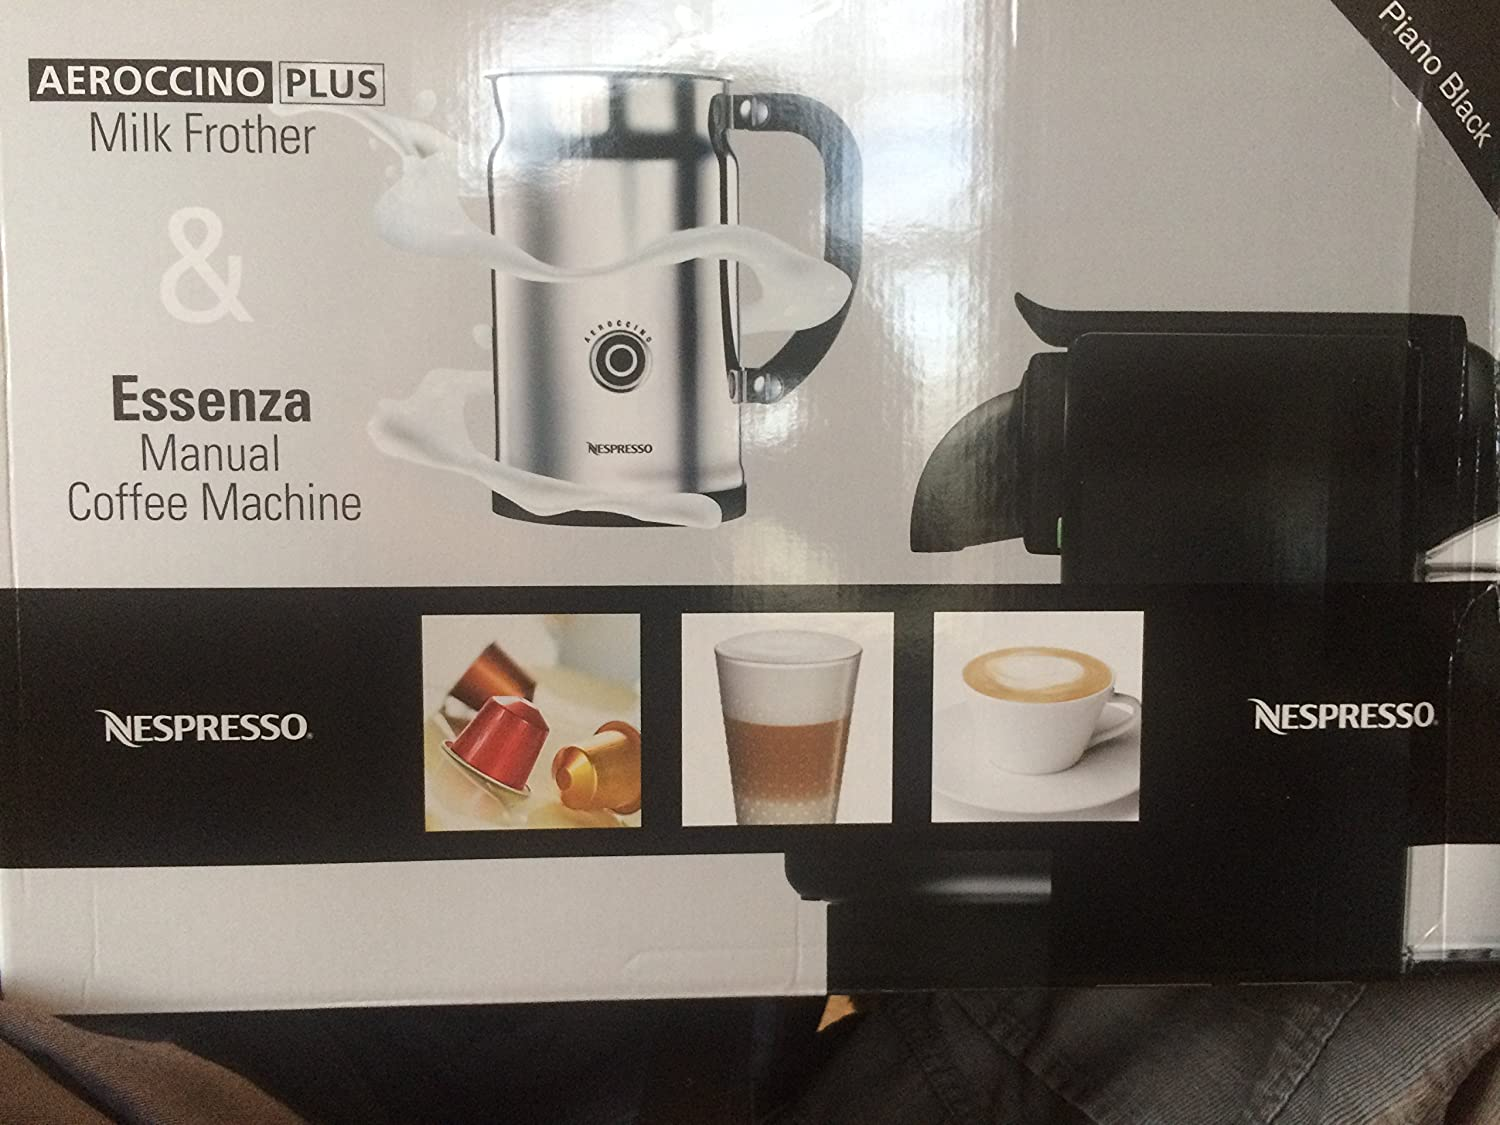 Essenza Manual Espresso Machine with Aeroccino Plus Milk Frother Bundle Option: Black/Aero+Bundle by Nespresso: Amazon.es: Hogar